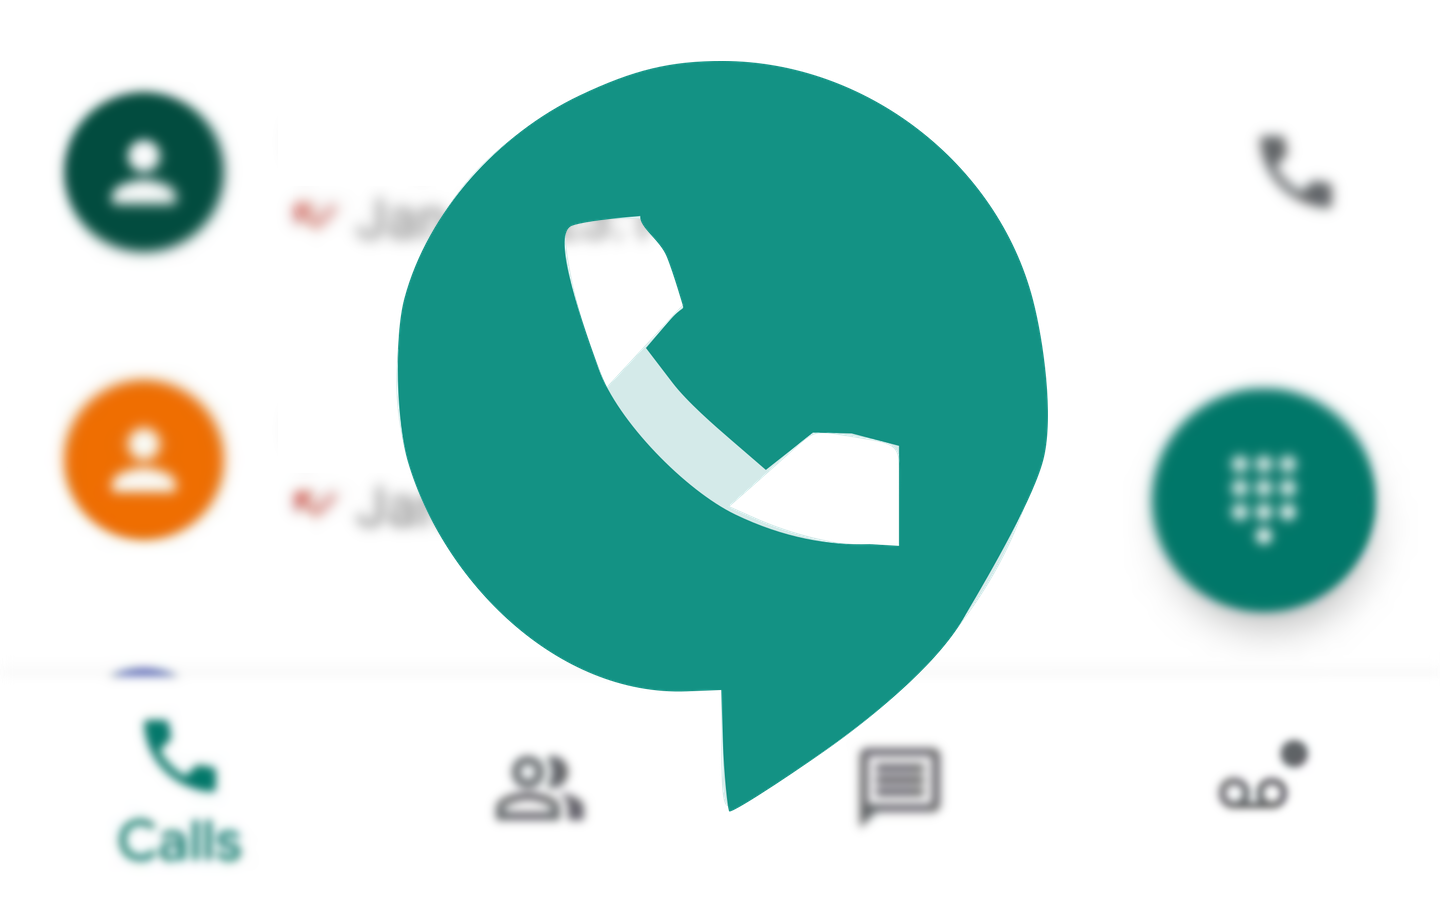 Revamped Google Voice web interface offers quick access to calls and settings